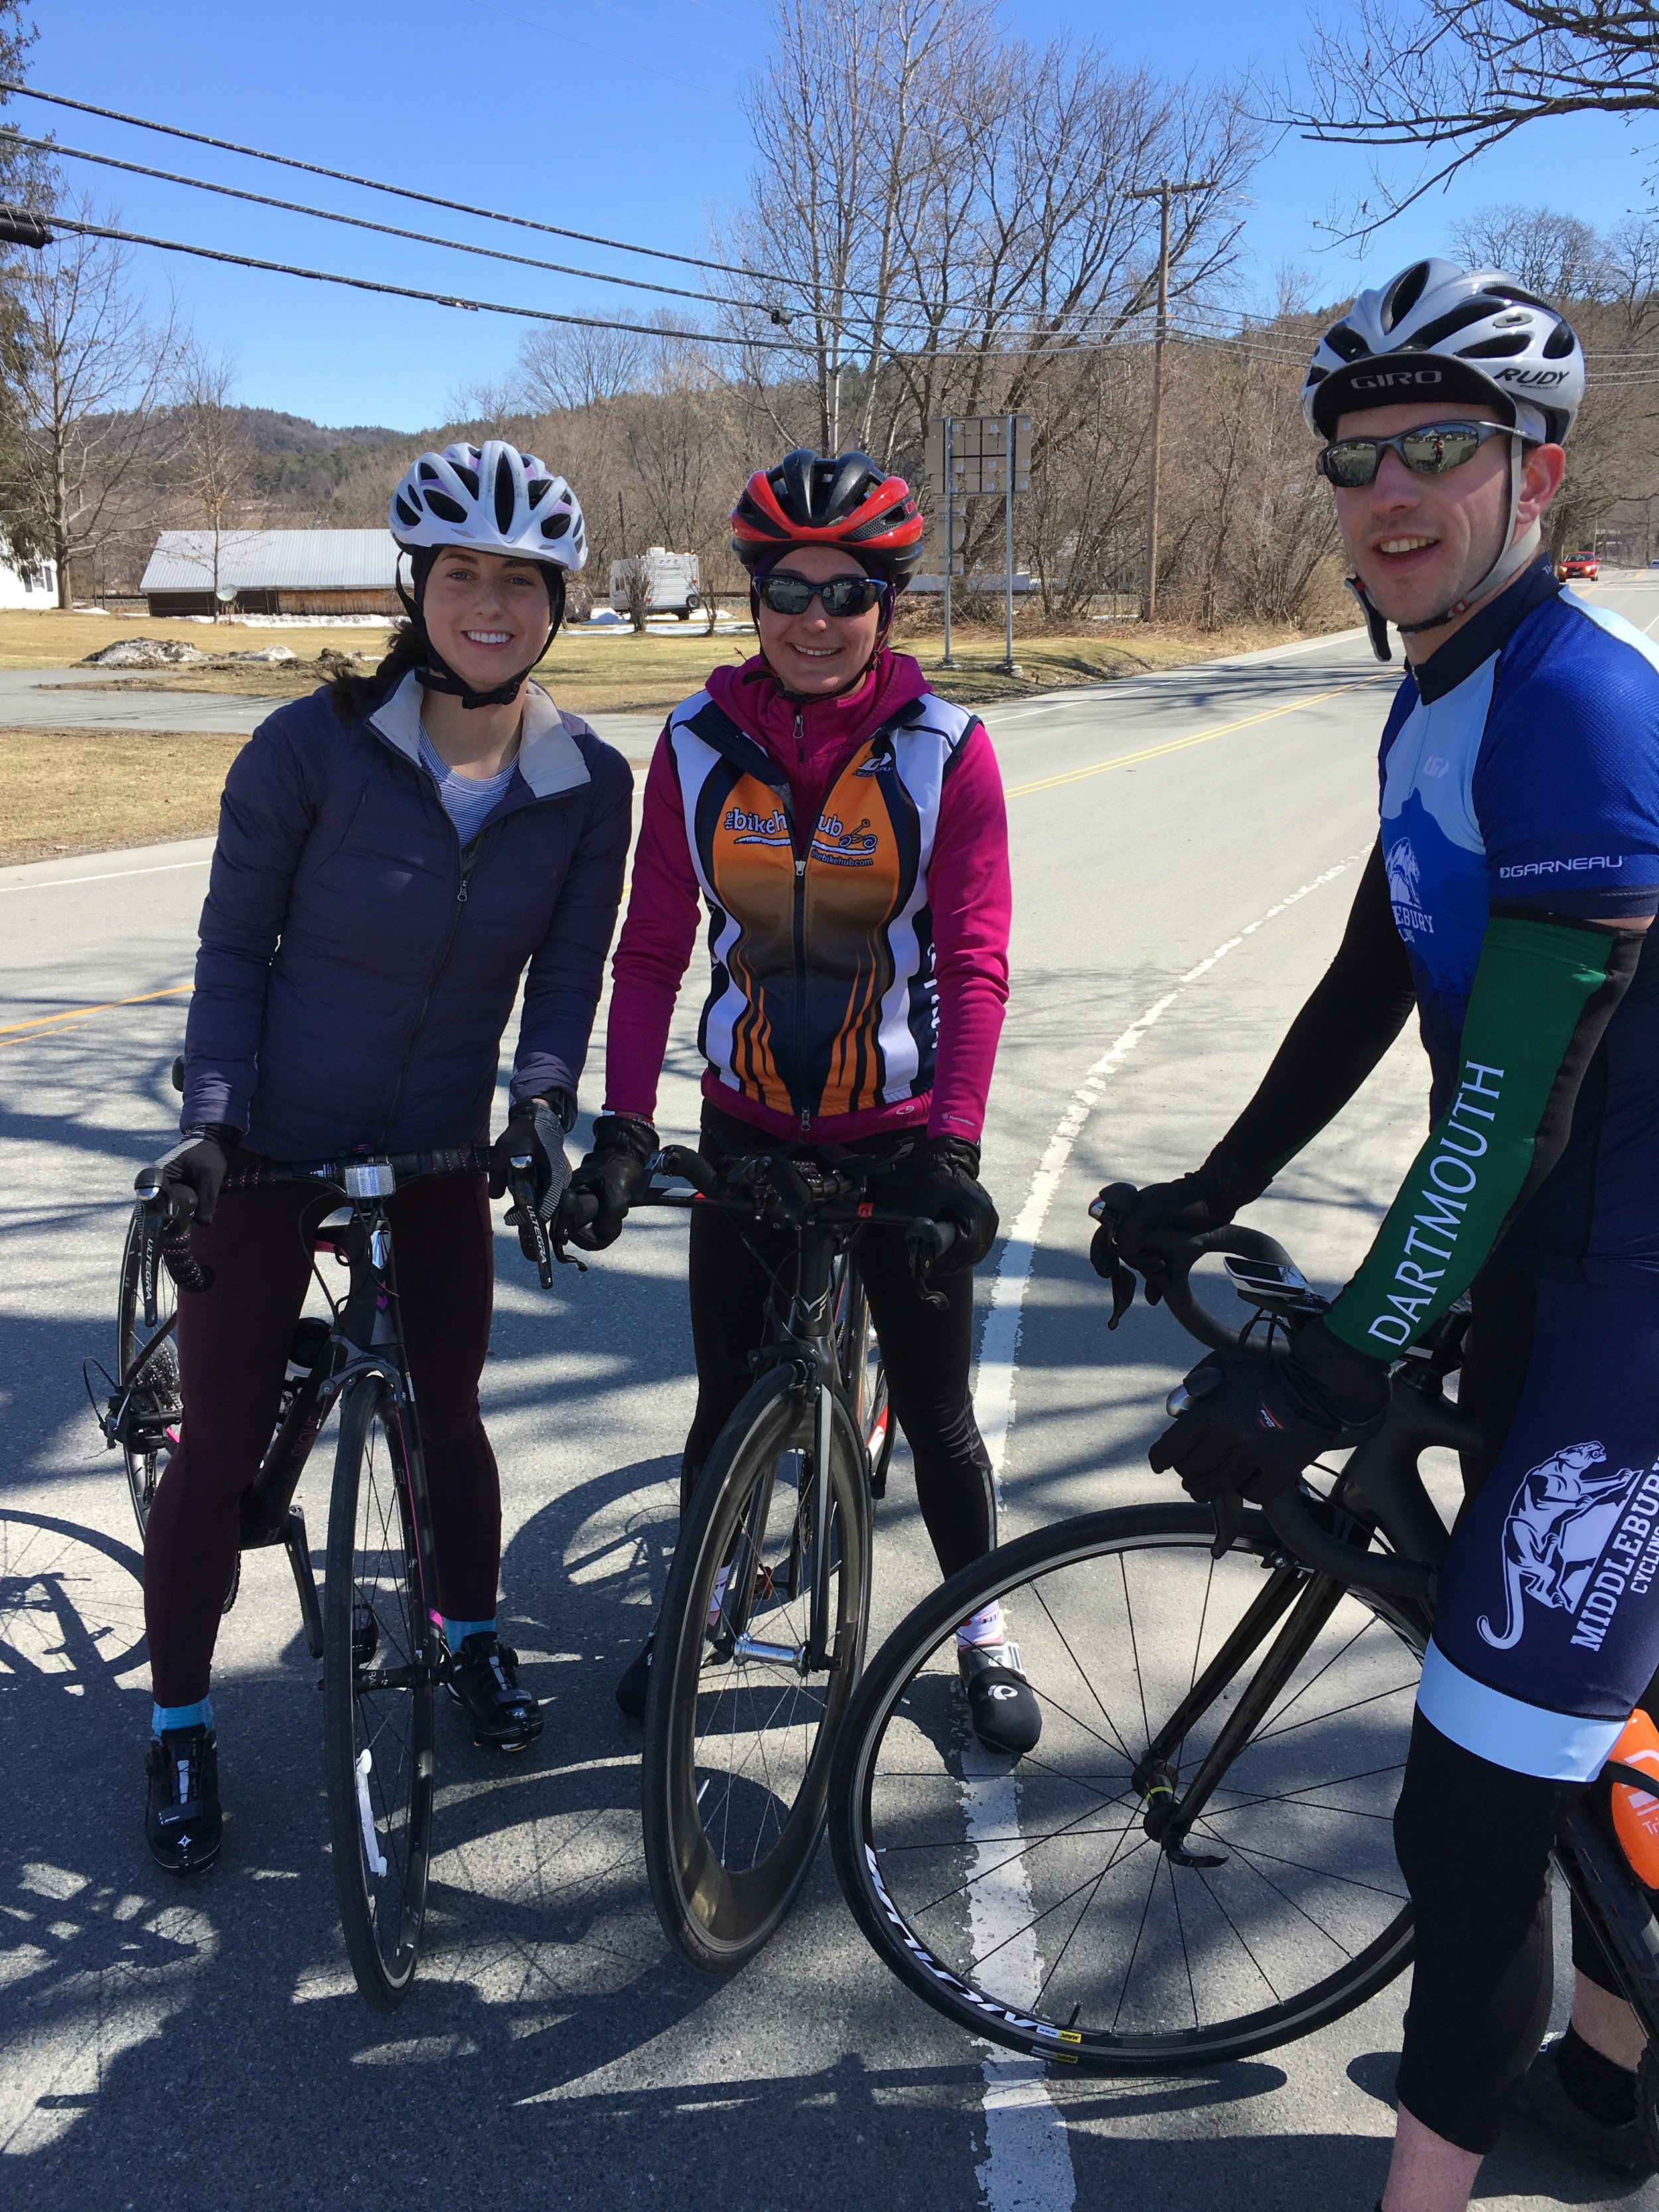 Cool Spring riding claudia katie bruno blog pic.jpg